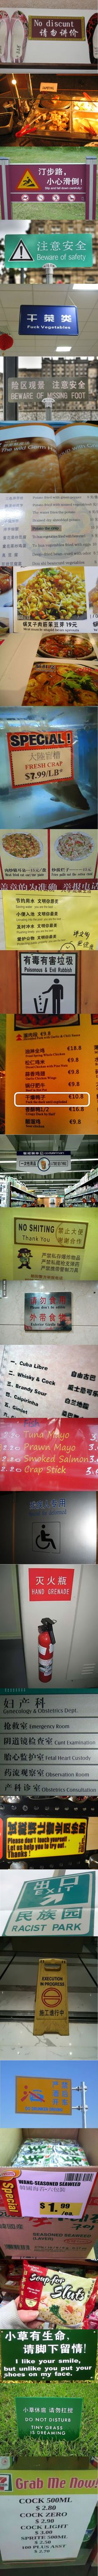 Meanwhile in China...